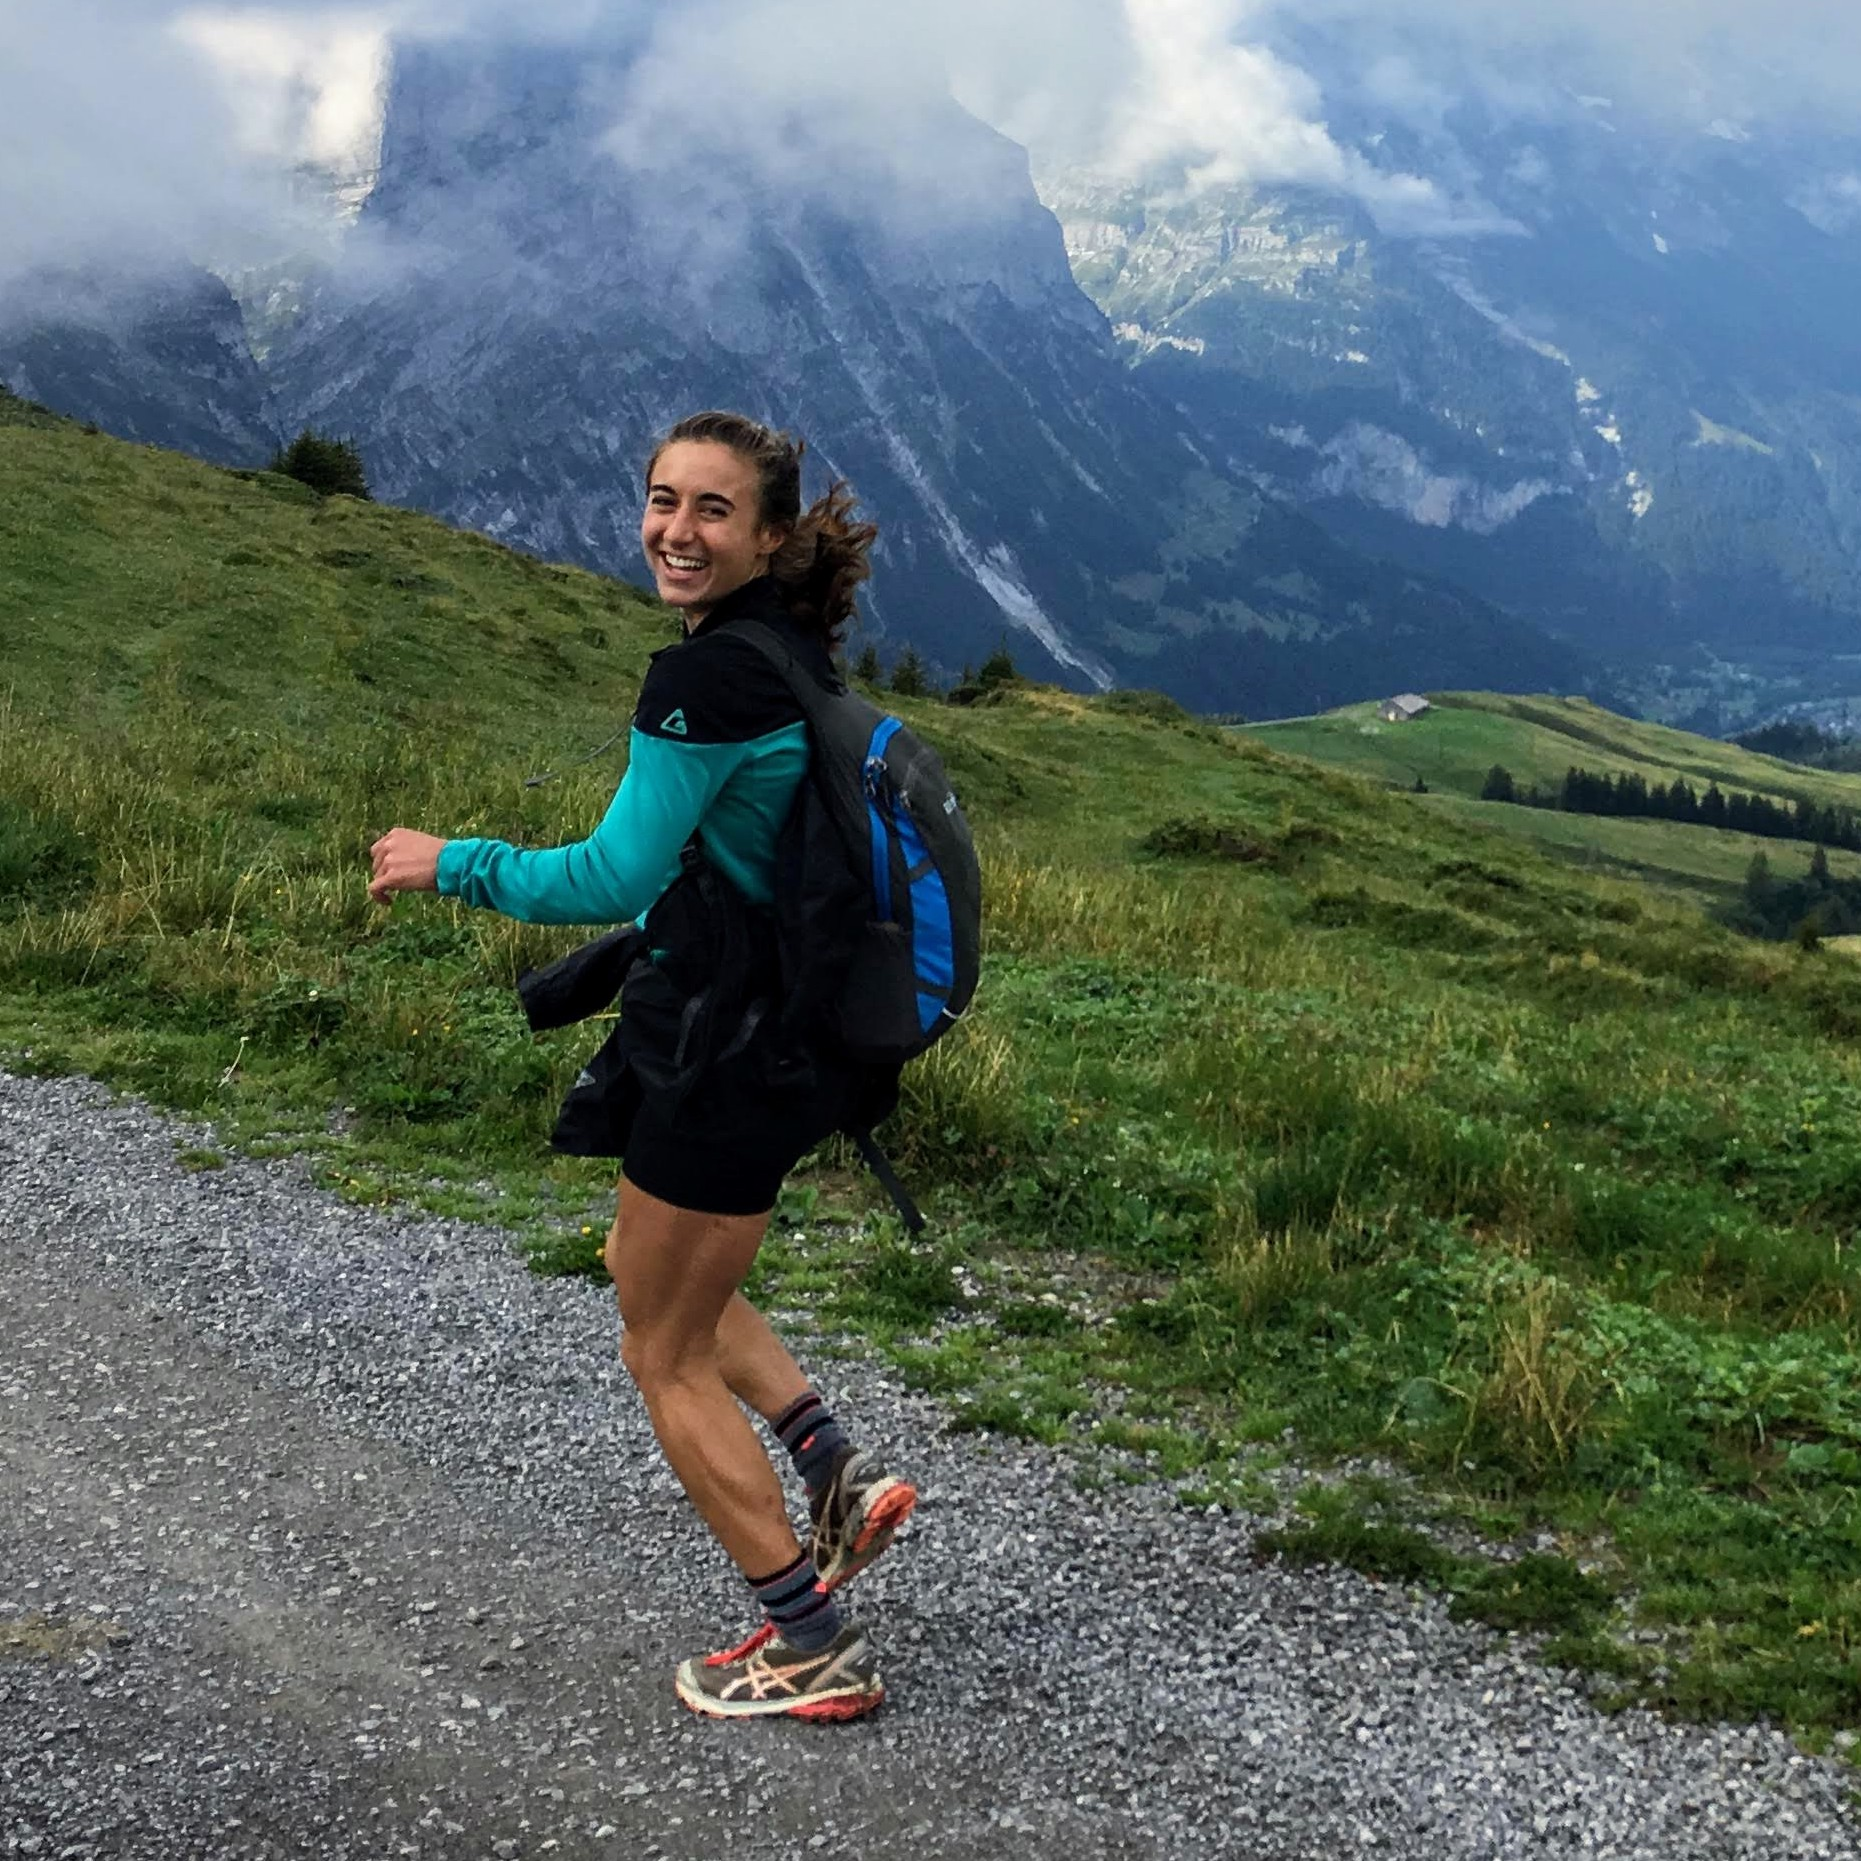 Girl running and hiking